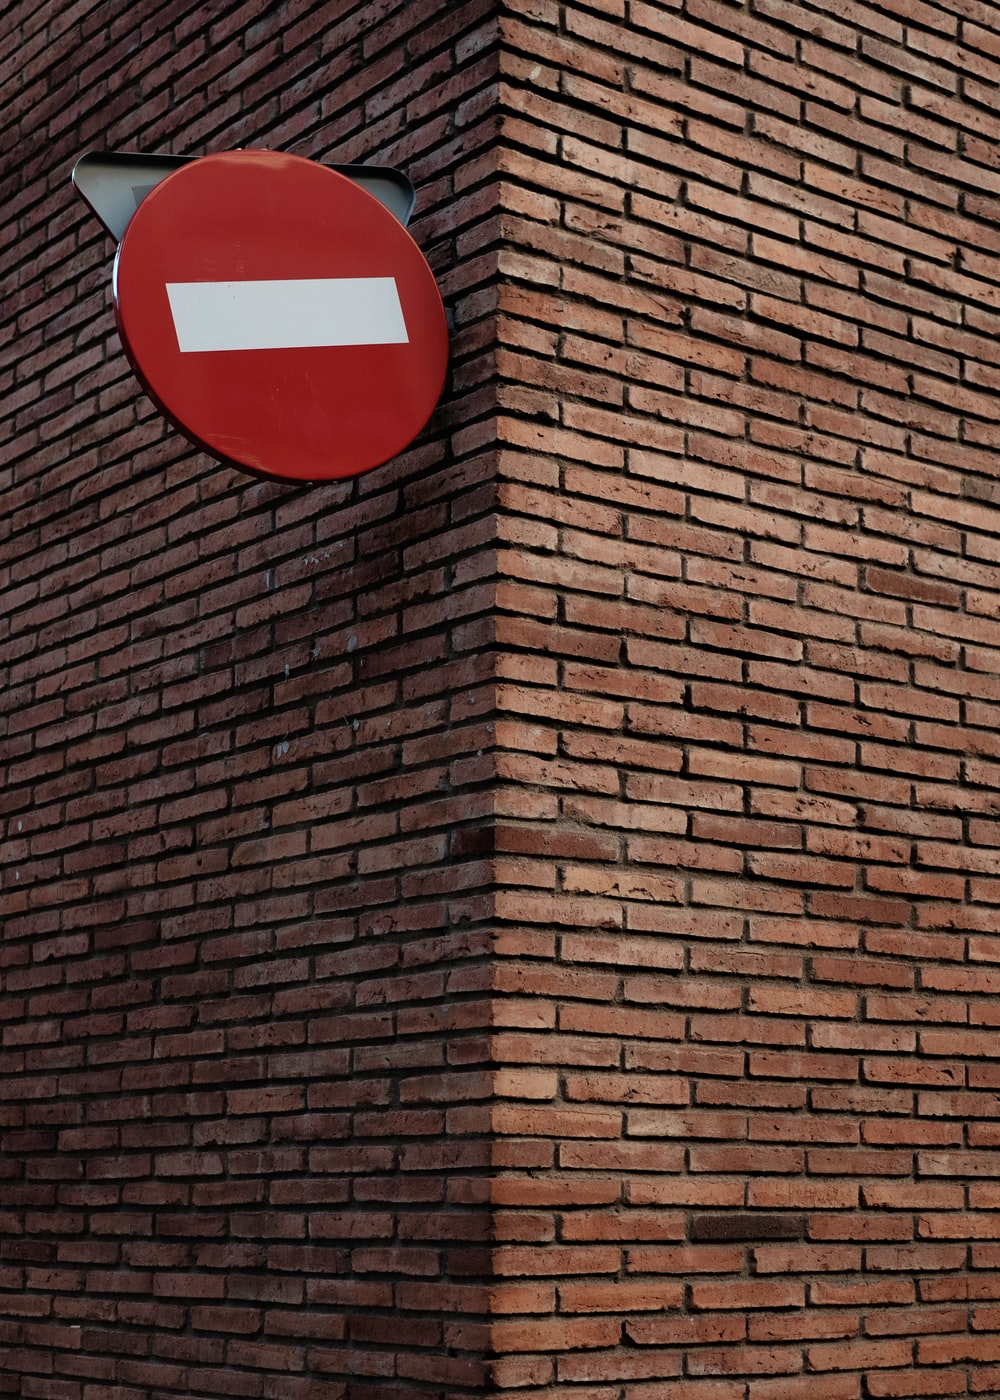 red and white signage on red brick wall at daytime